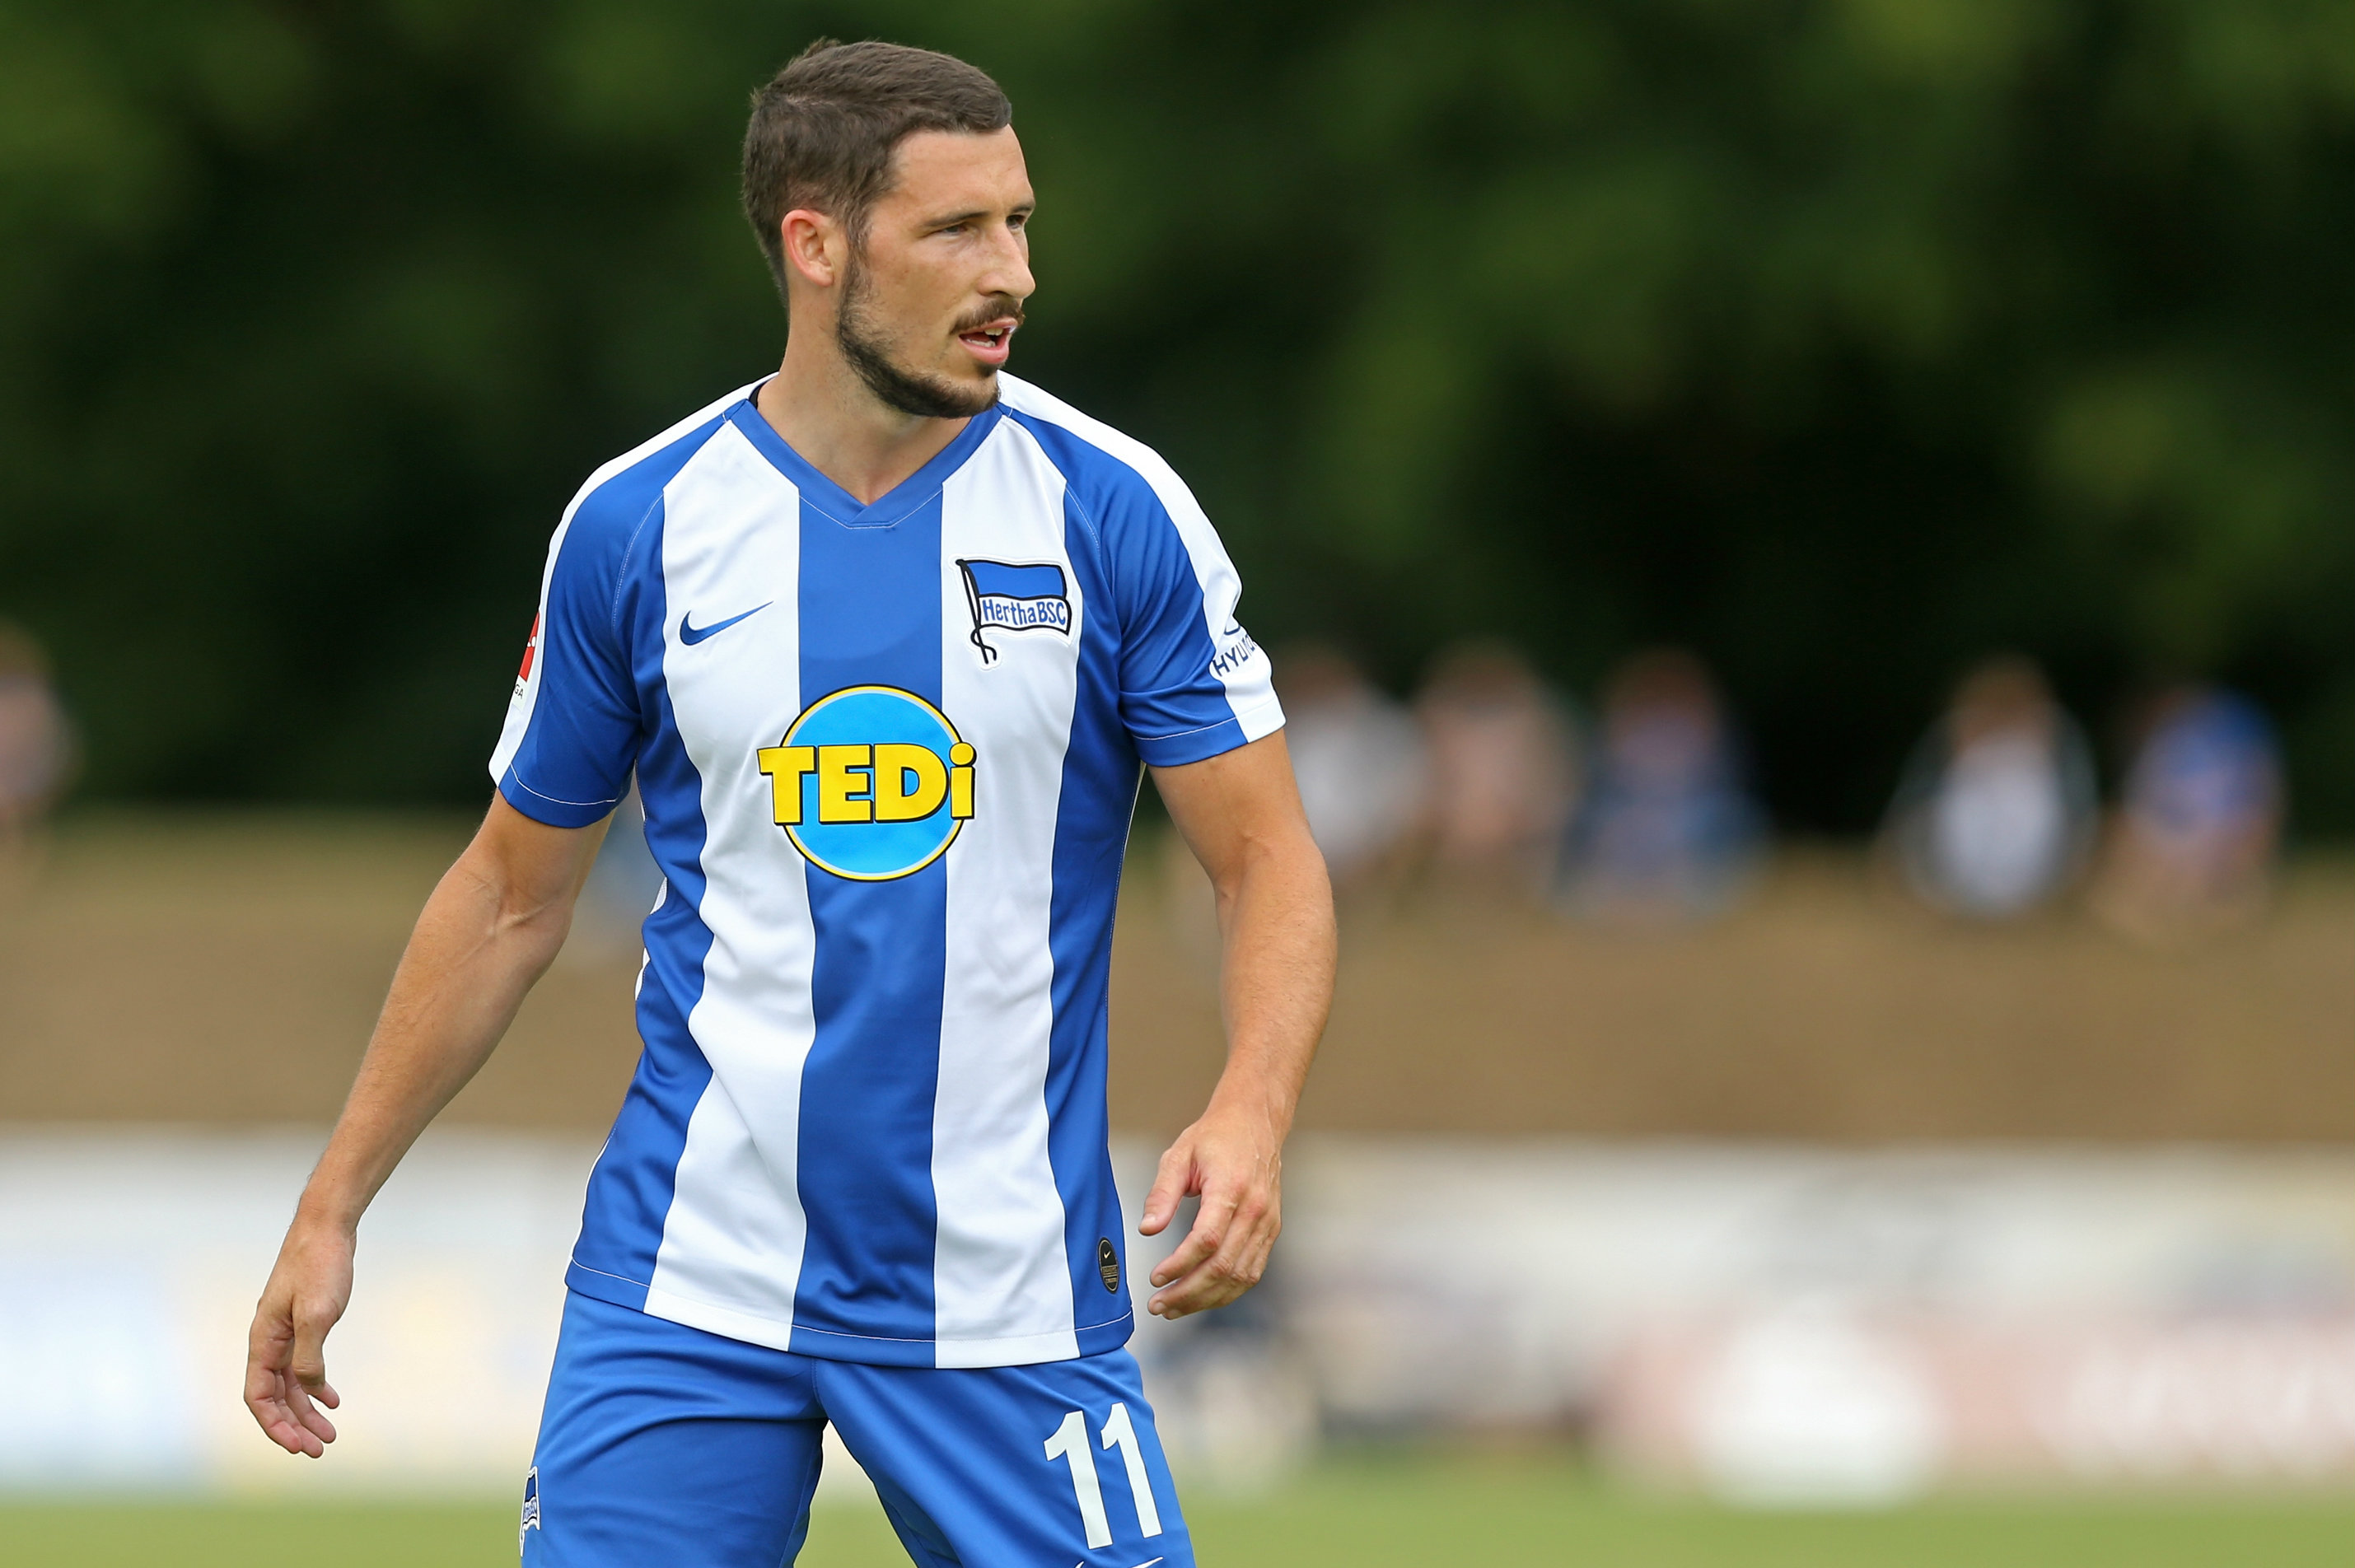 Mathew Leckie's Hertha Berlin will be expected to progress in the Cup against fourth tier opposition